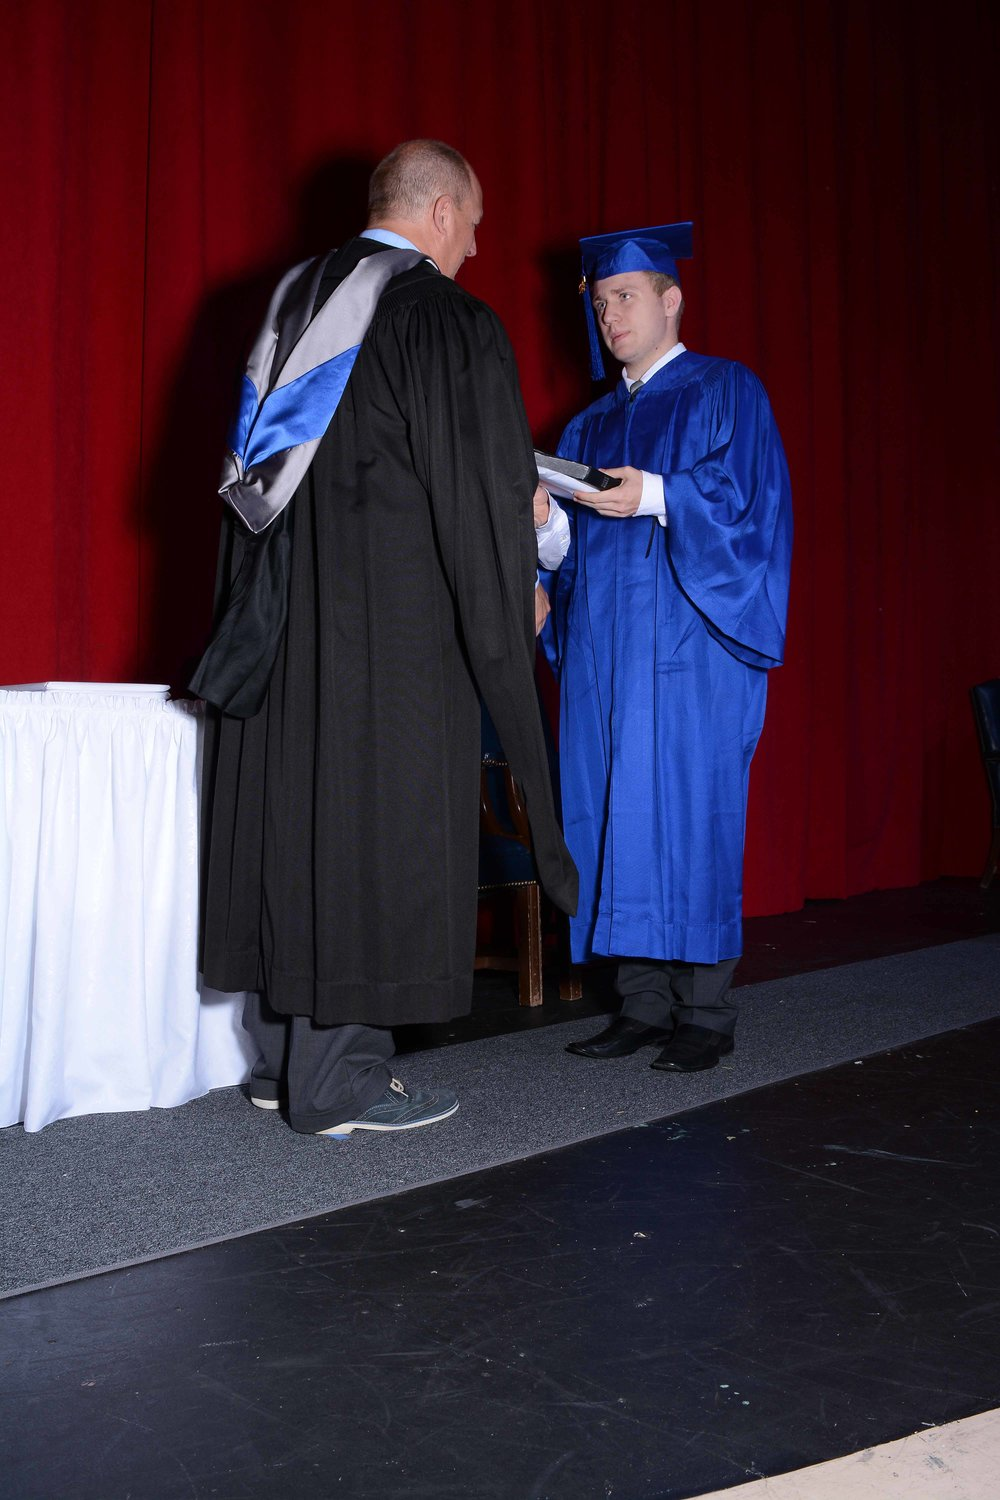 May14 Commencement179.jpg